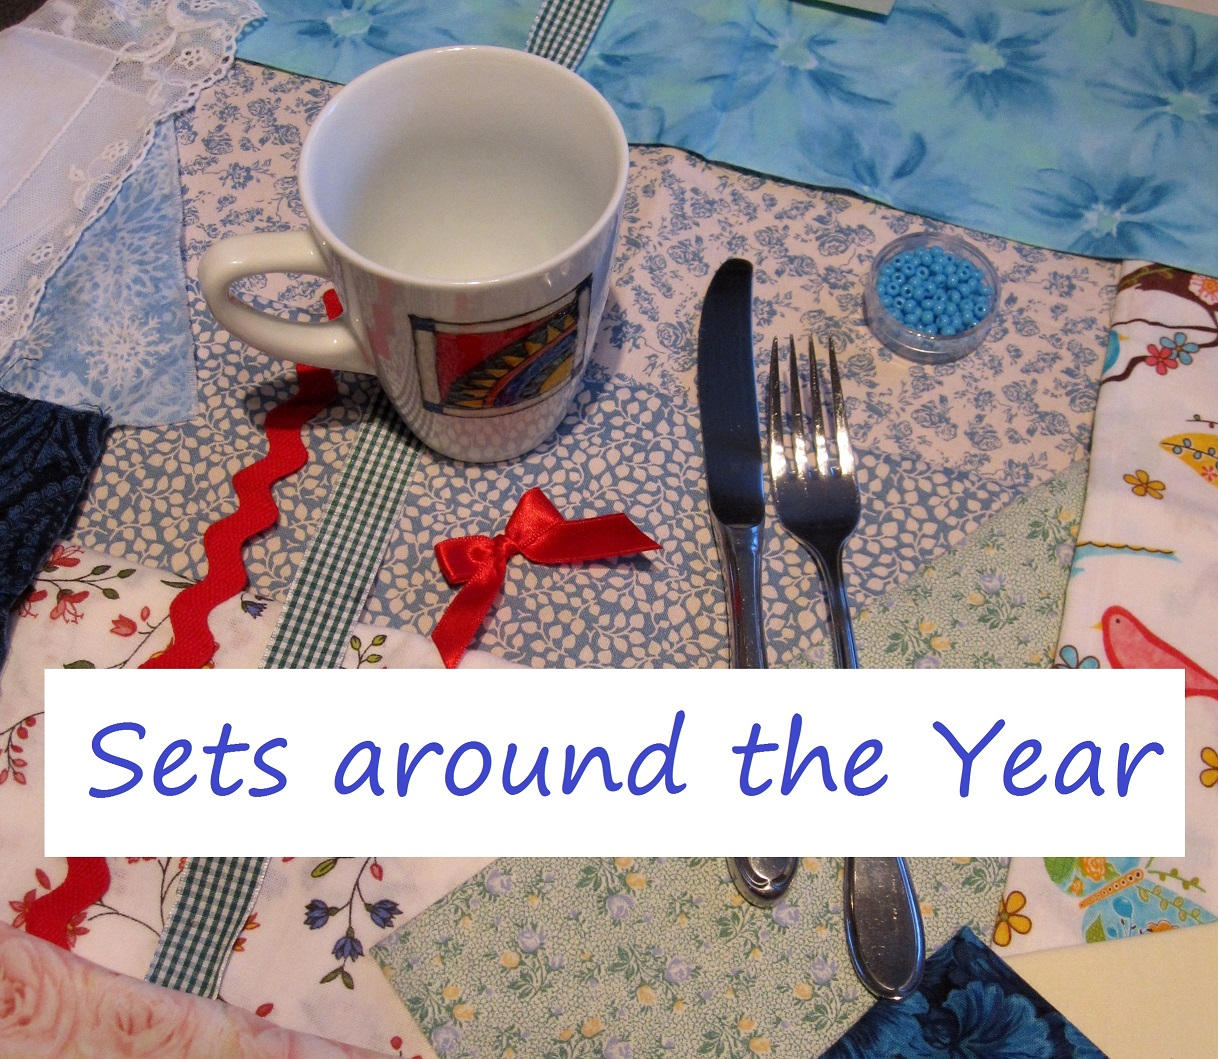 Sets around the year